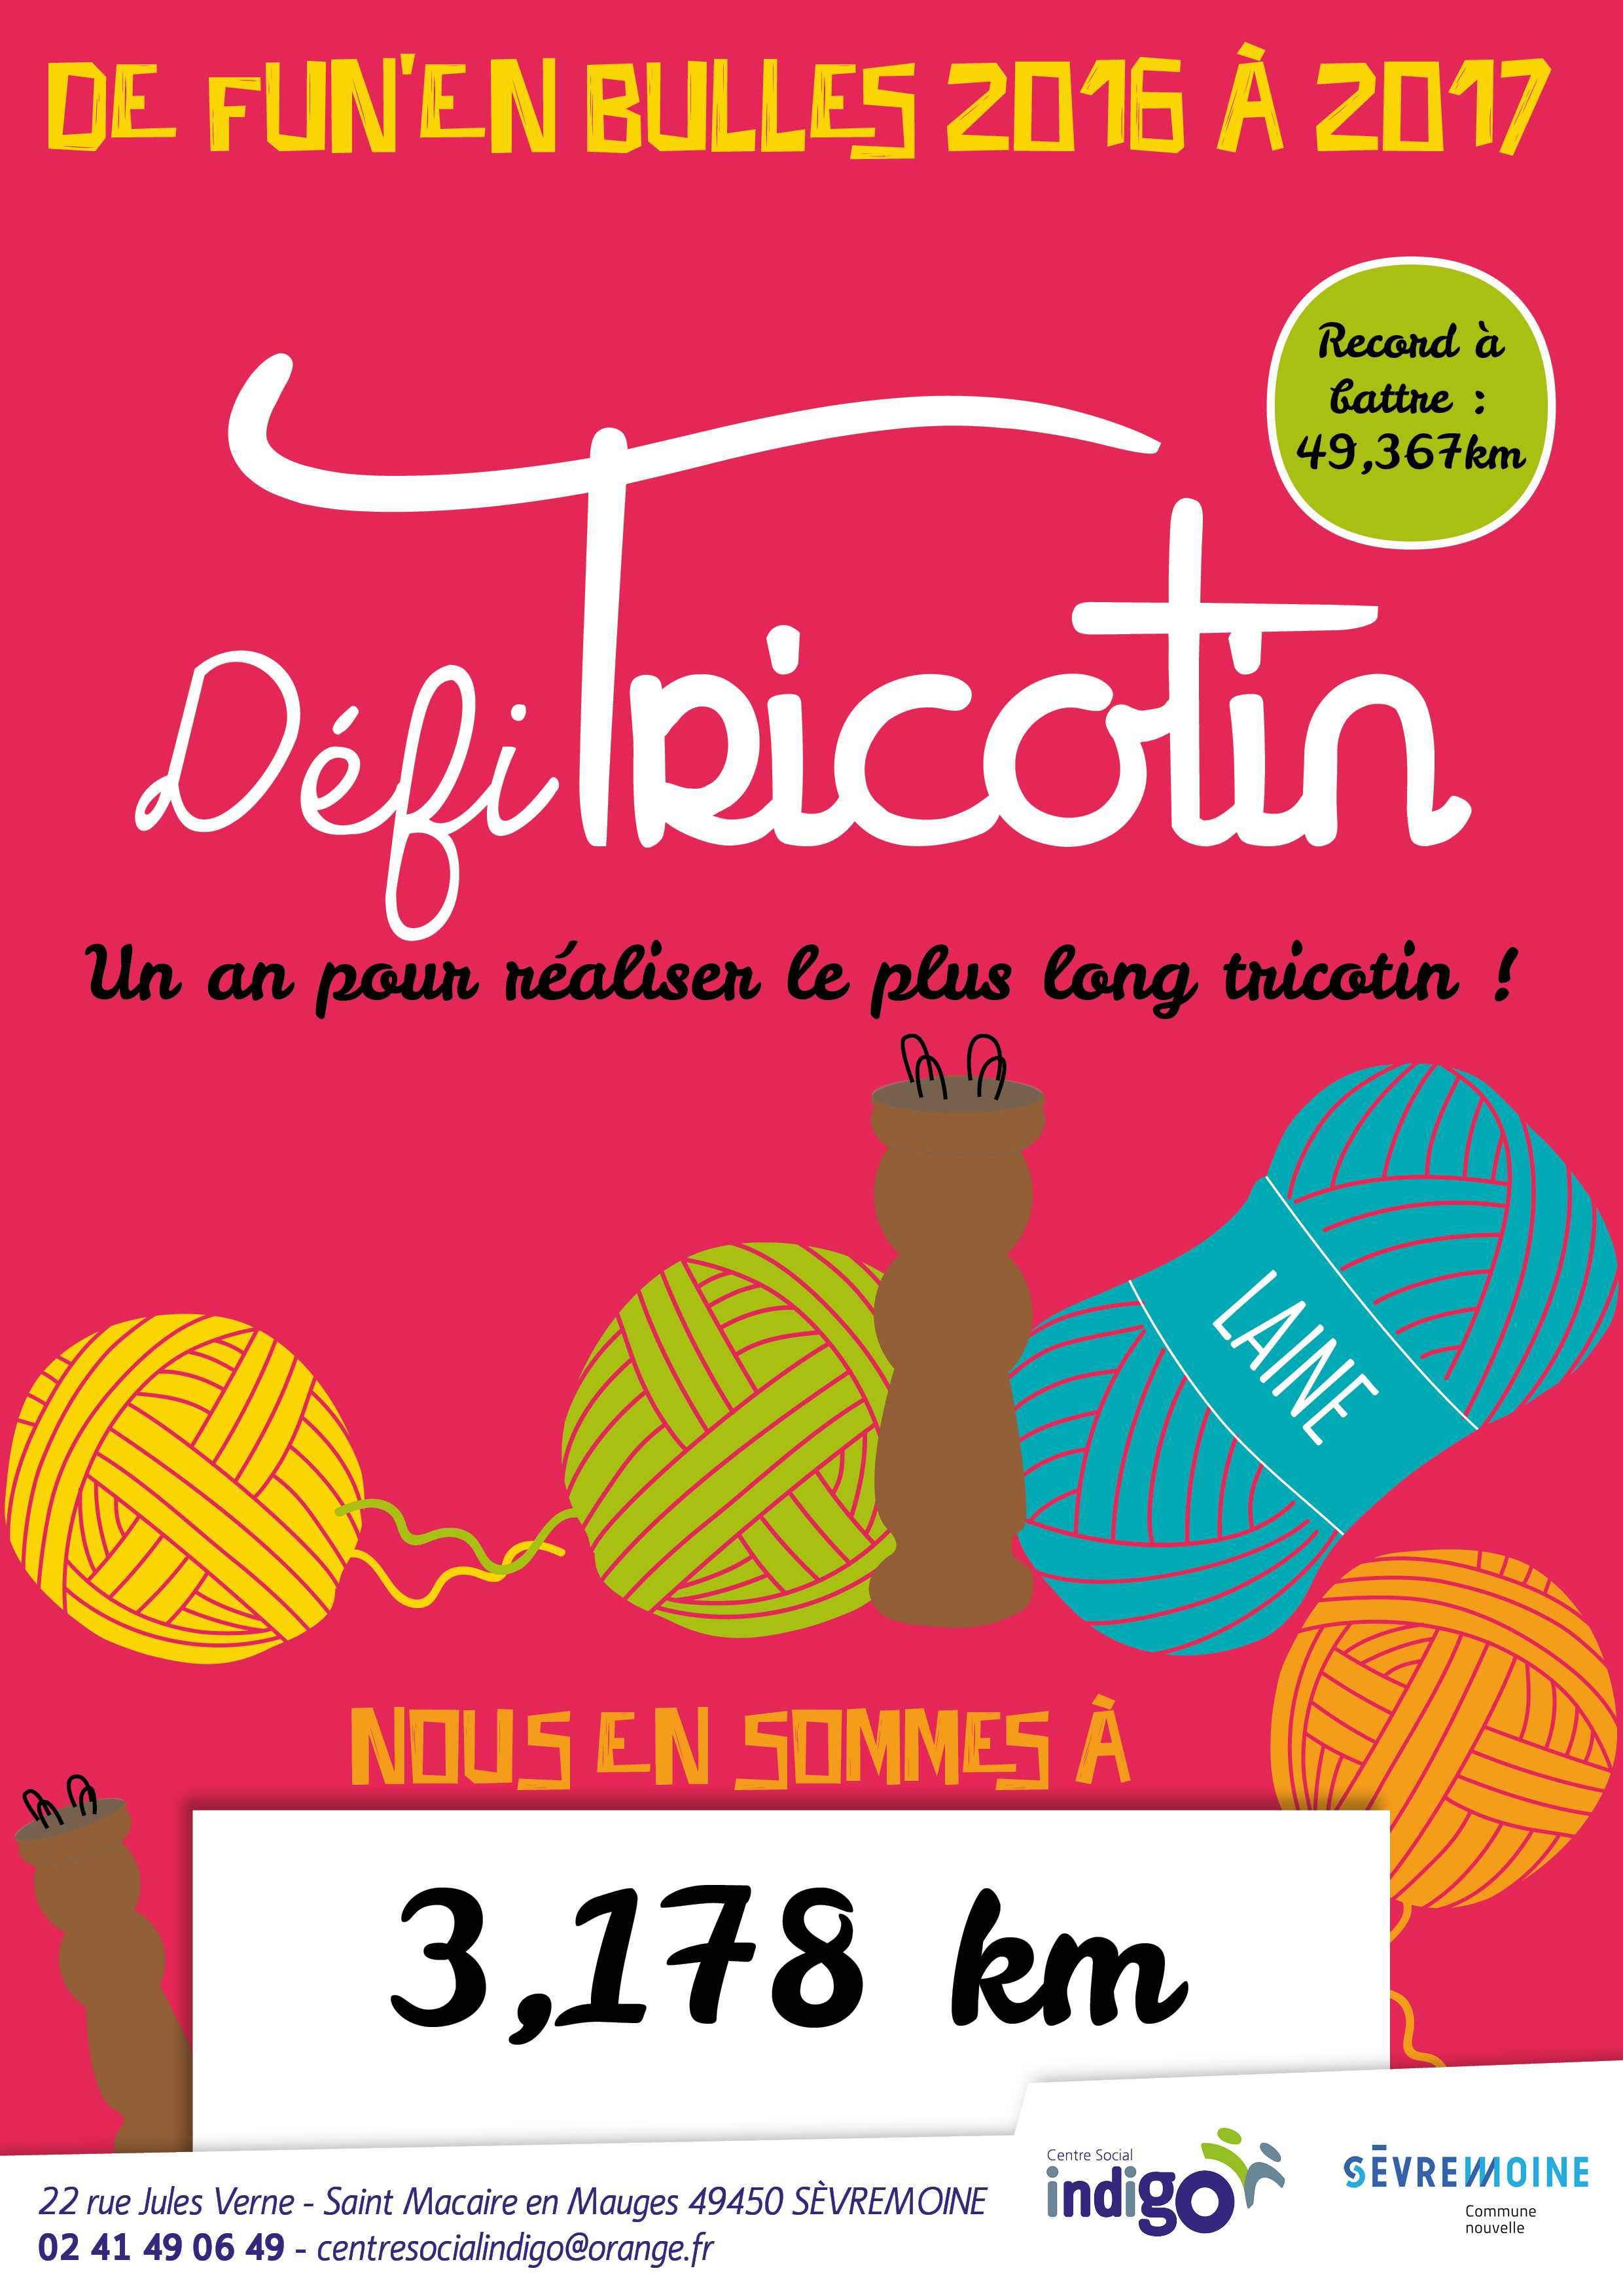 defi tricotin 7dec